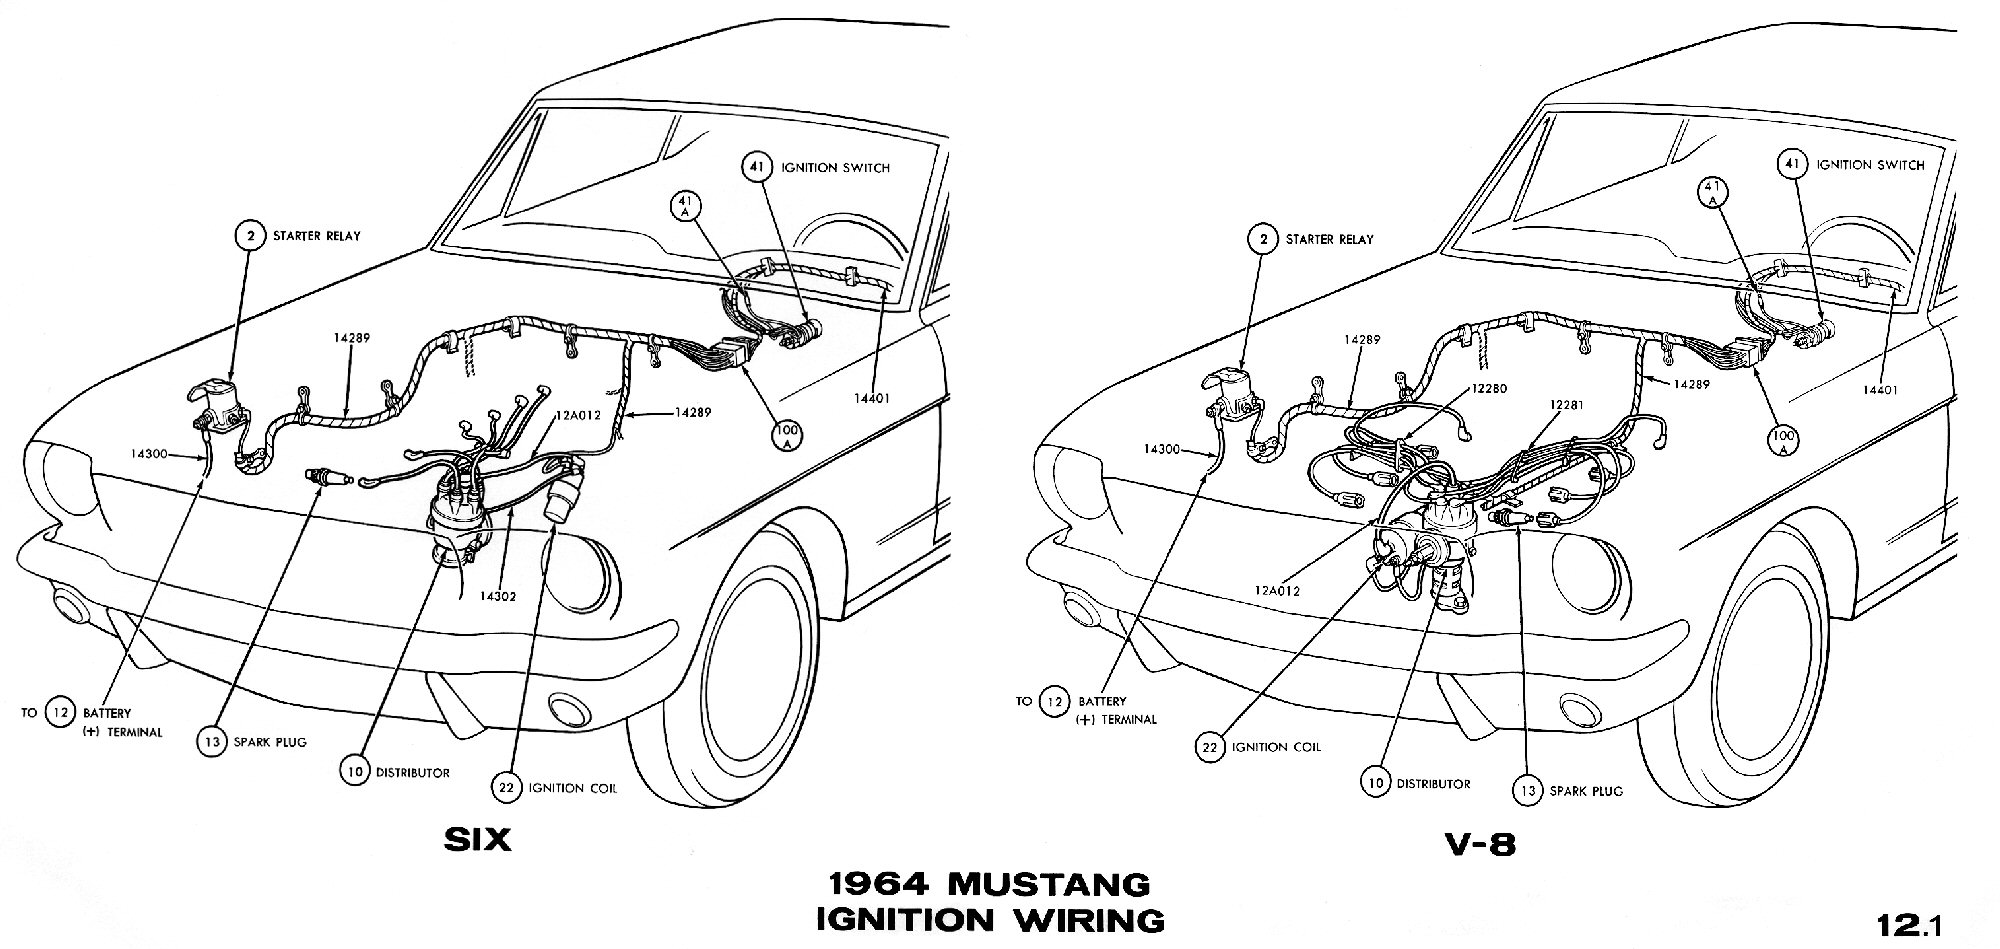 1964 Mustang Wiring Diagrams Average Joe Restoration 1978 Ford Ignition Wires Diagram Sm1964c Pictorial